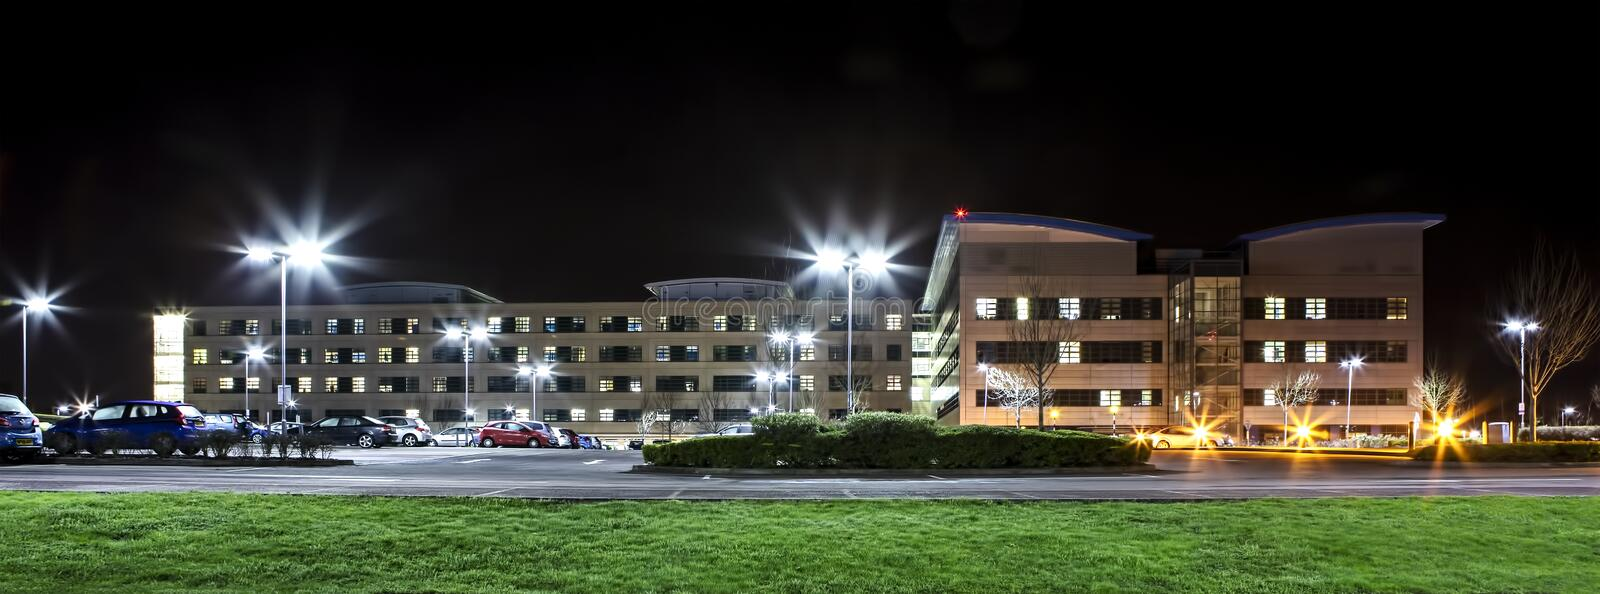 Ospedale di Swindon Great Western fotografie stock